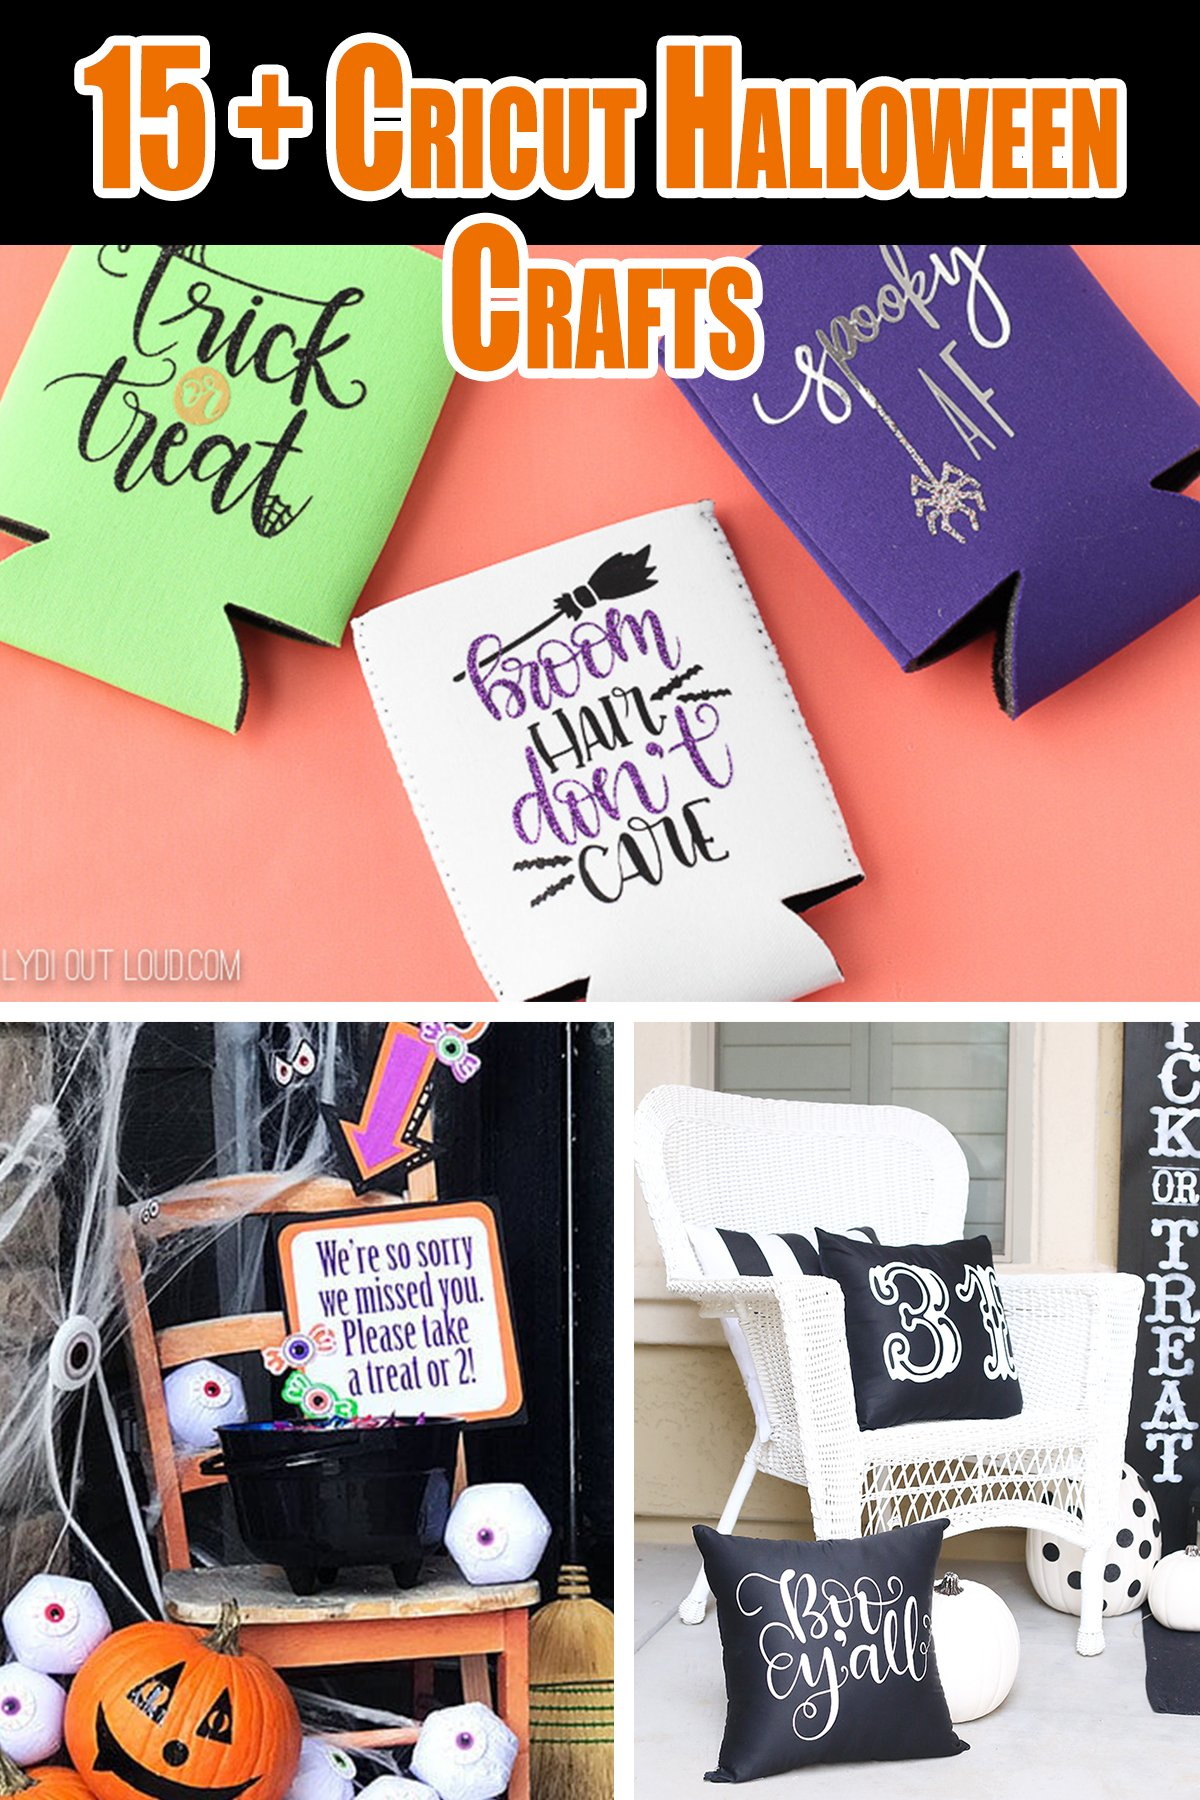 Halloween Cricut Craft Ideas to get you motivated to create some spooky and fun Cricut Crafts this Halloween. Grab your Cricut and let's get crafting. #cricut #Halloween #crafts #ideas #spooky #blackandwhite #decals #decorations #homemade #diy #easy